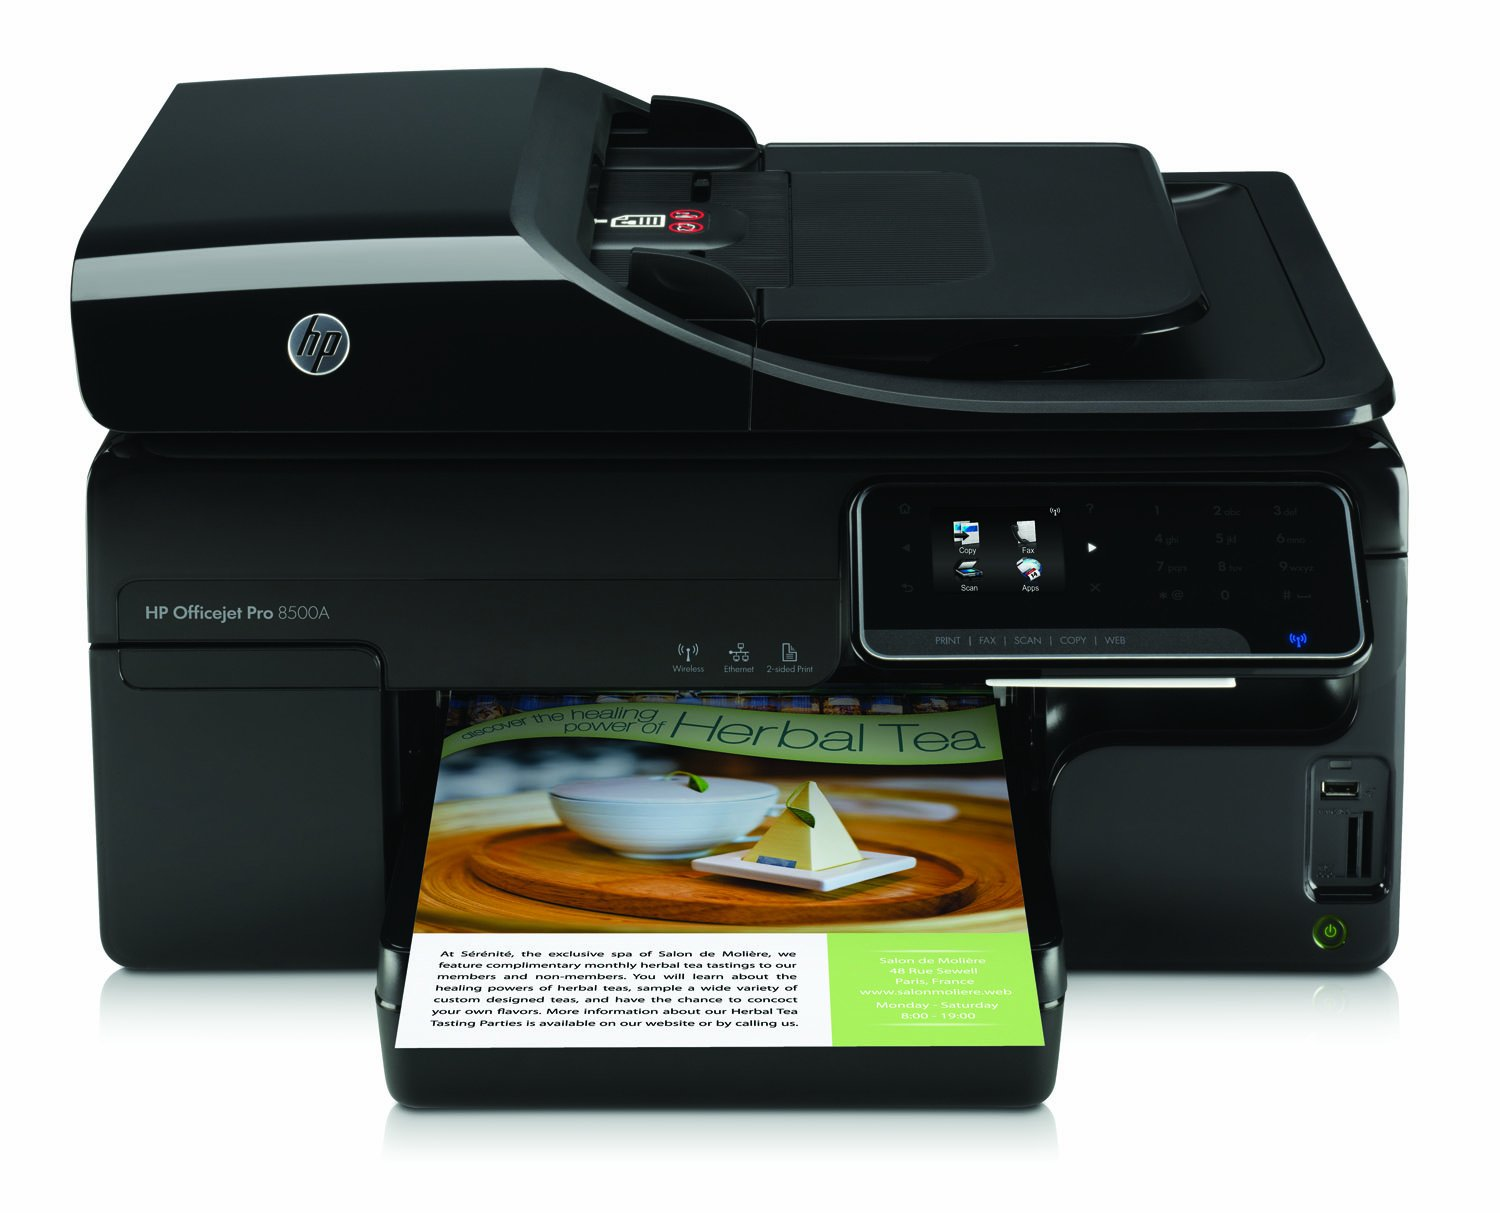 Amazon.com : HP Officejet Pro 8500A e-All-in-One Color Ink ...